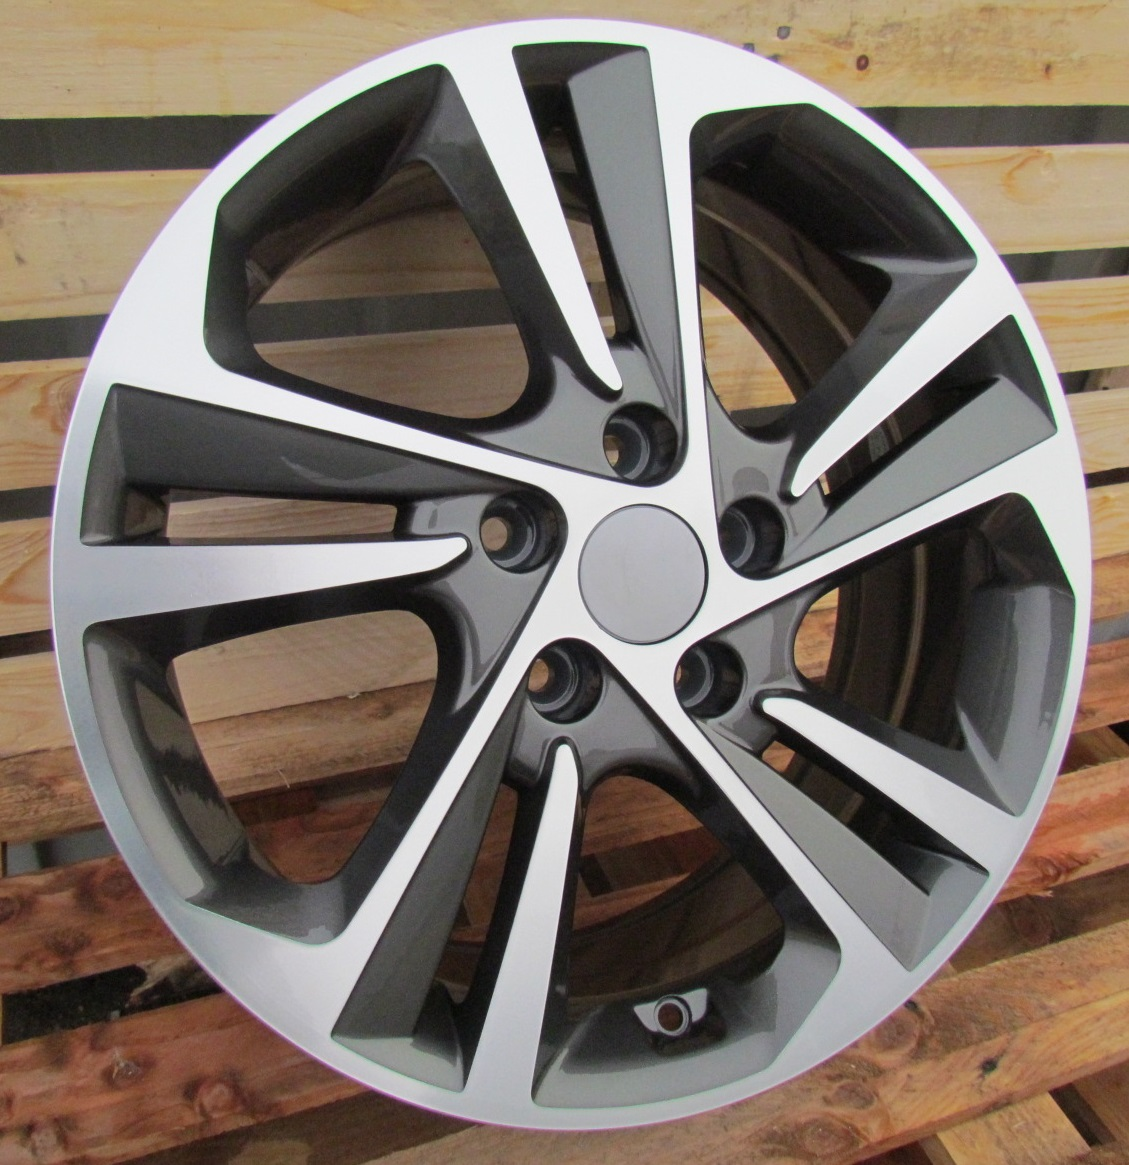 H15X6 5X114.3 ET40 67.1 BK5210 (A5473) MG+POWDER COATING RWR Hyundai (+2eur) ()## 6x15 ET40 5x114.3